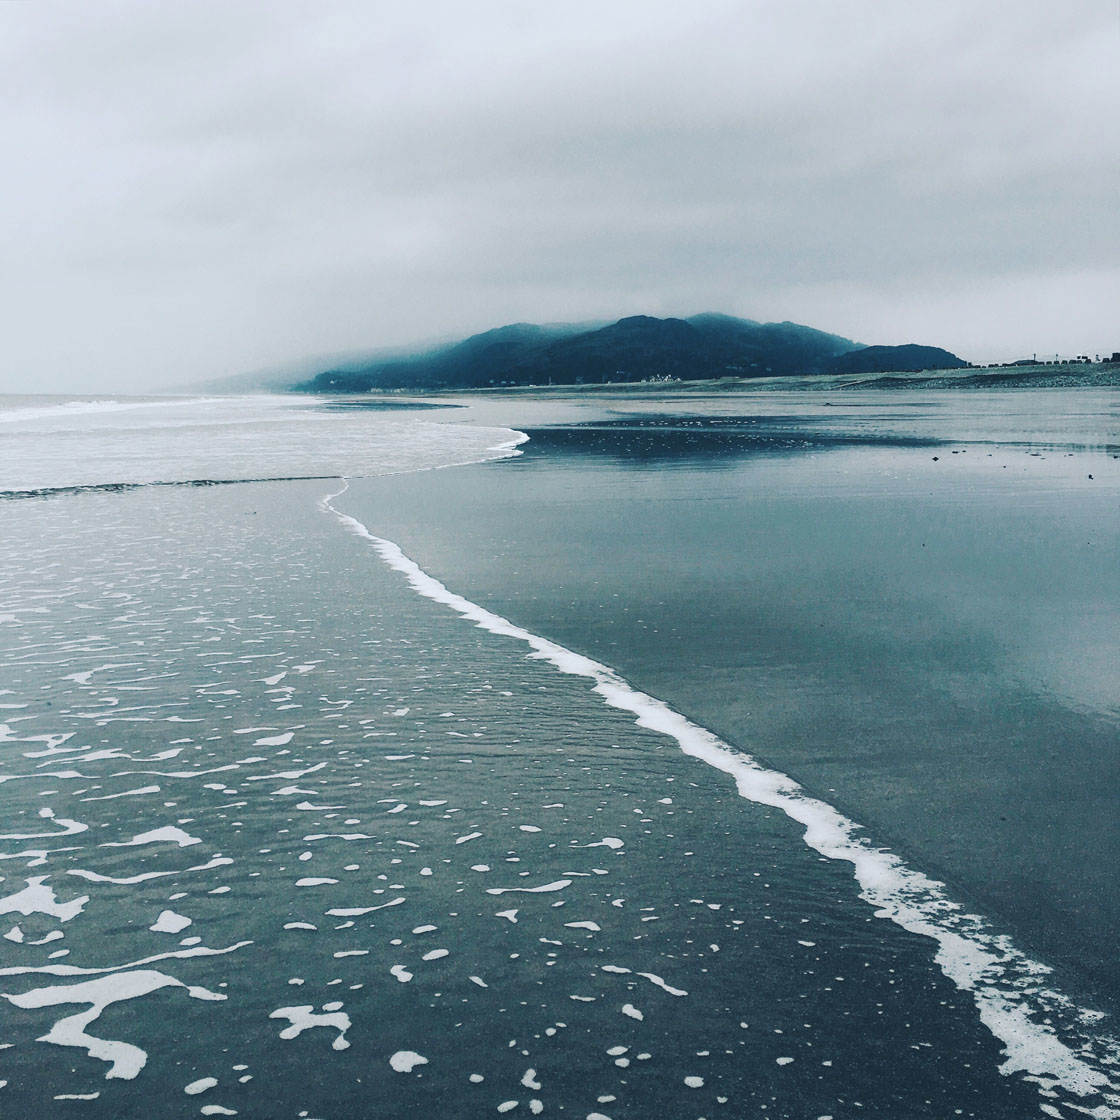 iPhone Photography Tips Leading Lines Depth no script